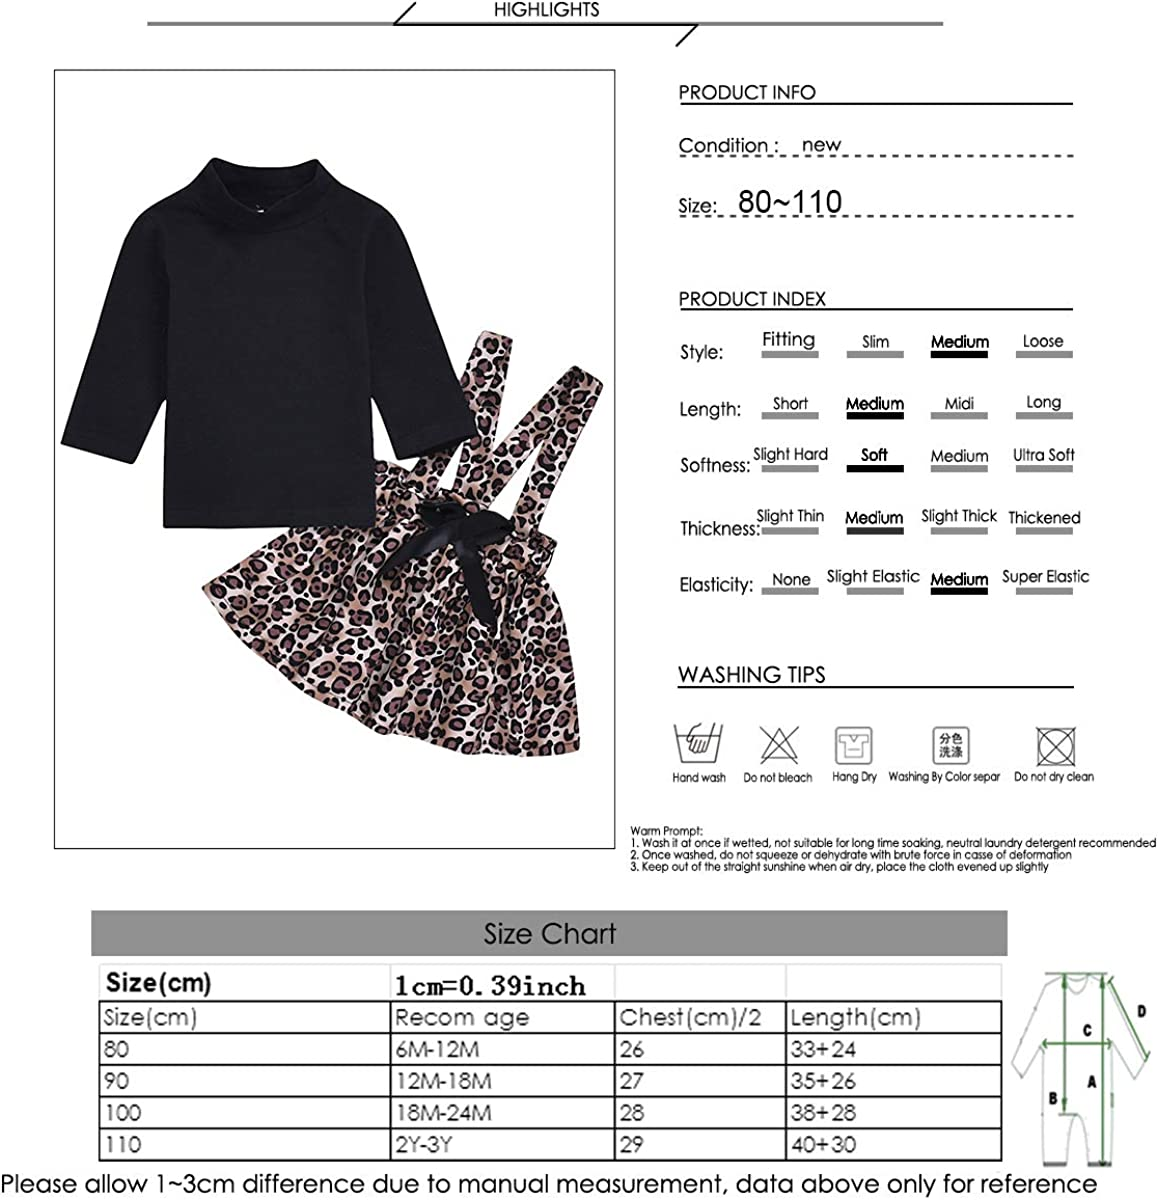 DaMohony 2 Piece Clothes for Babies Girls Suit with Shoulder Skirt Shirt Long Sleeve Floral Skirt for Spring Summer for Girls 6-36 Months